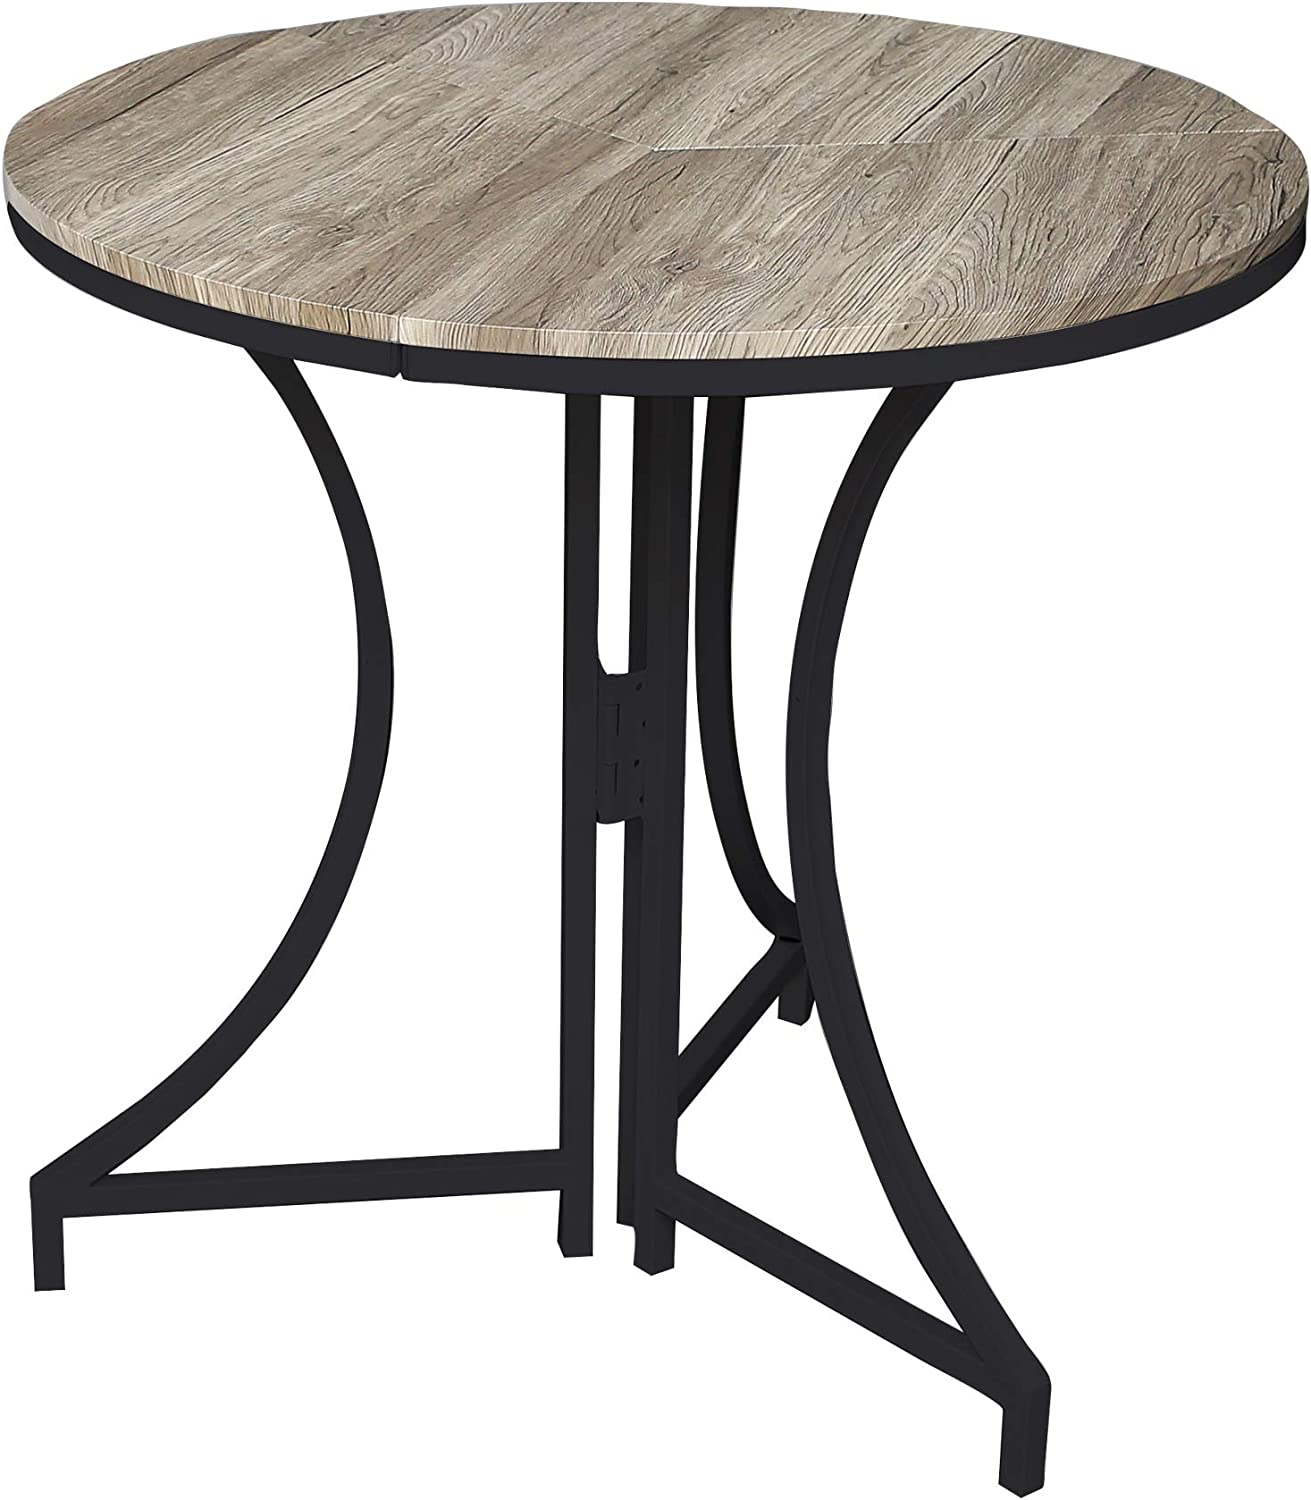 - Amazon.com: SpaceMaster Round Folding Black Table 31.5 X 31.5 X